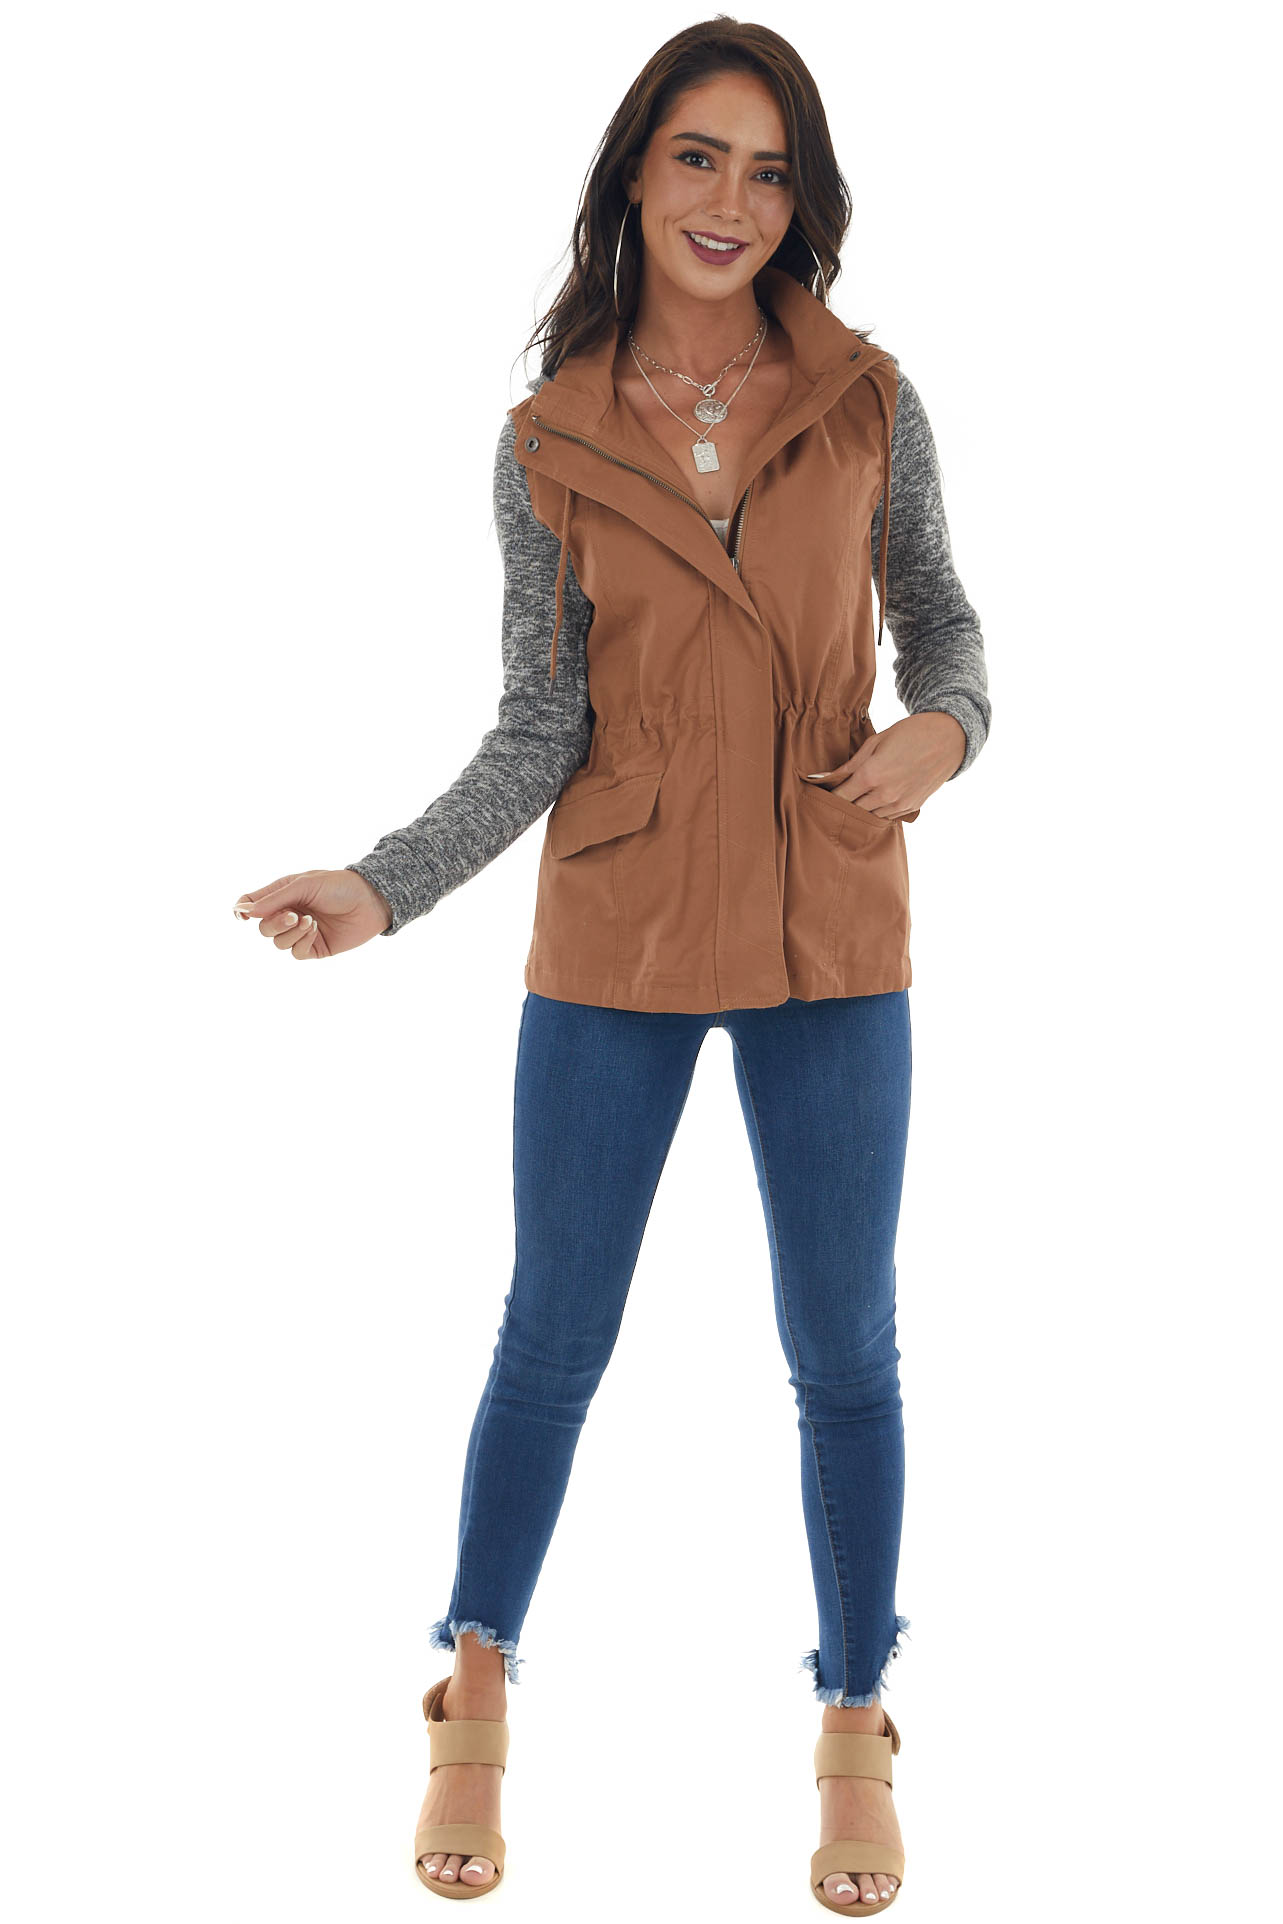 Cognac Hooded Jacket with Knit Contrast